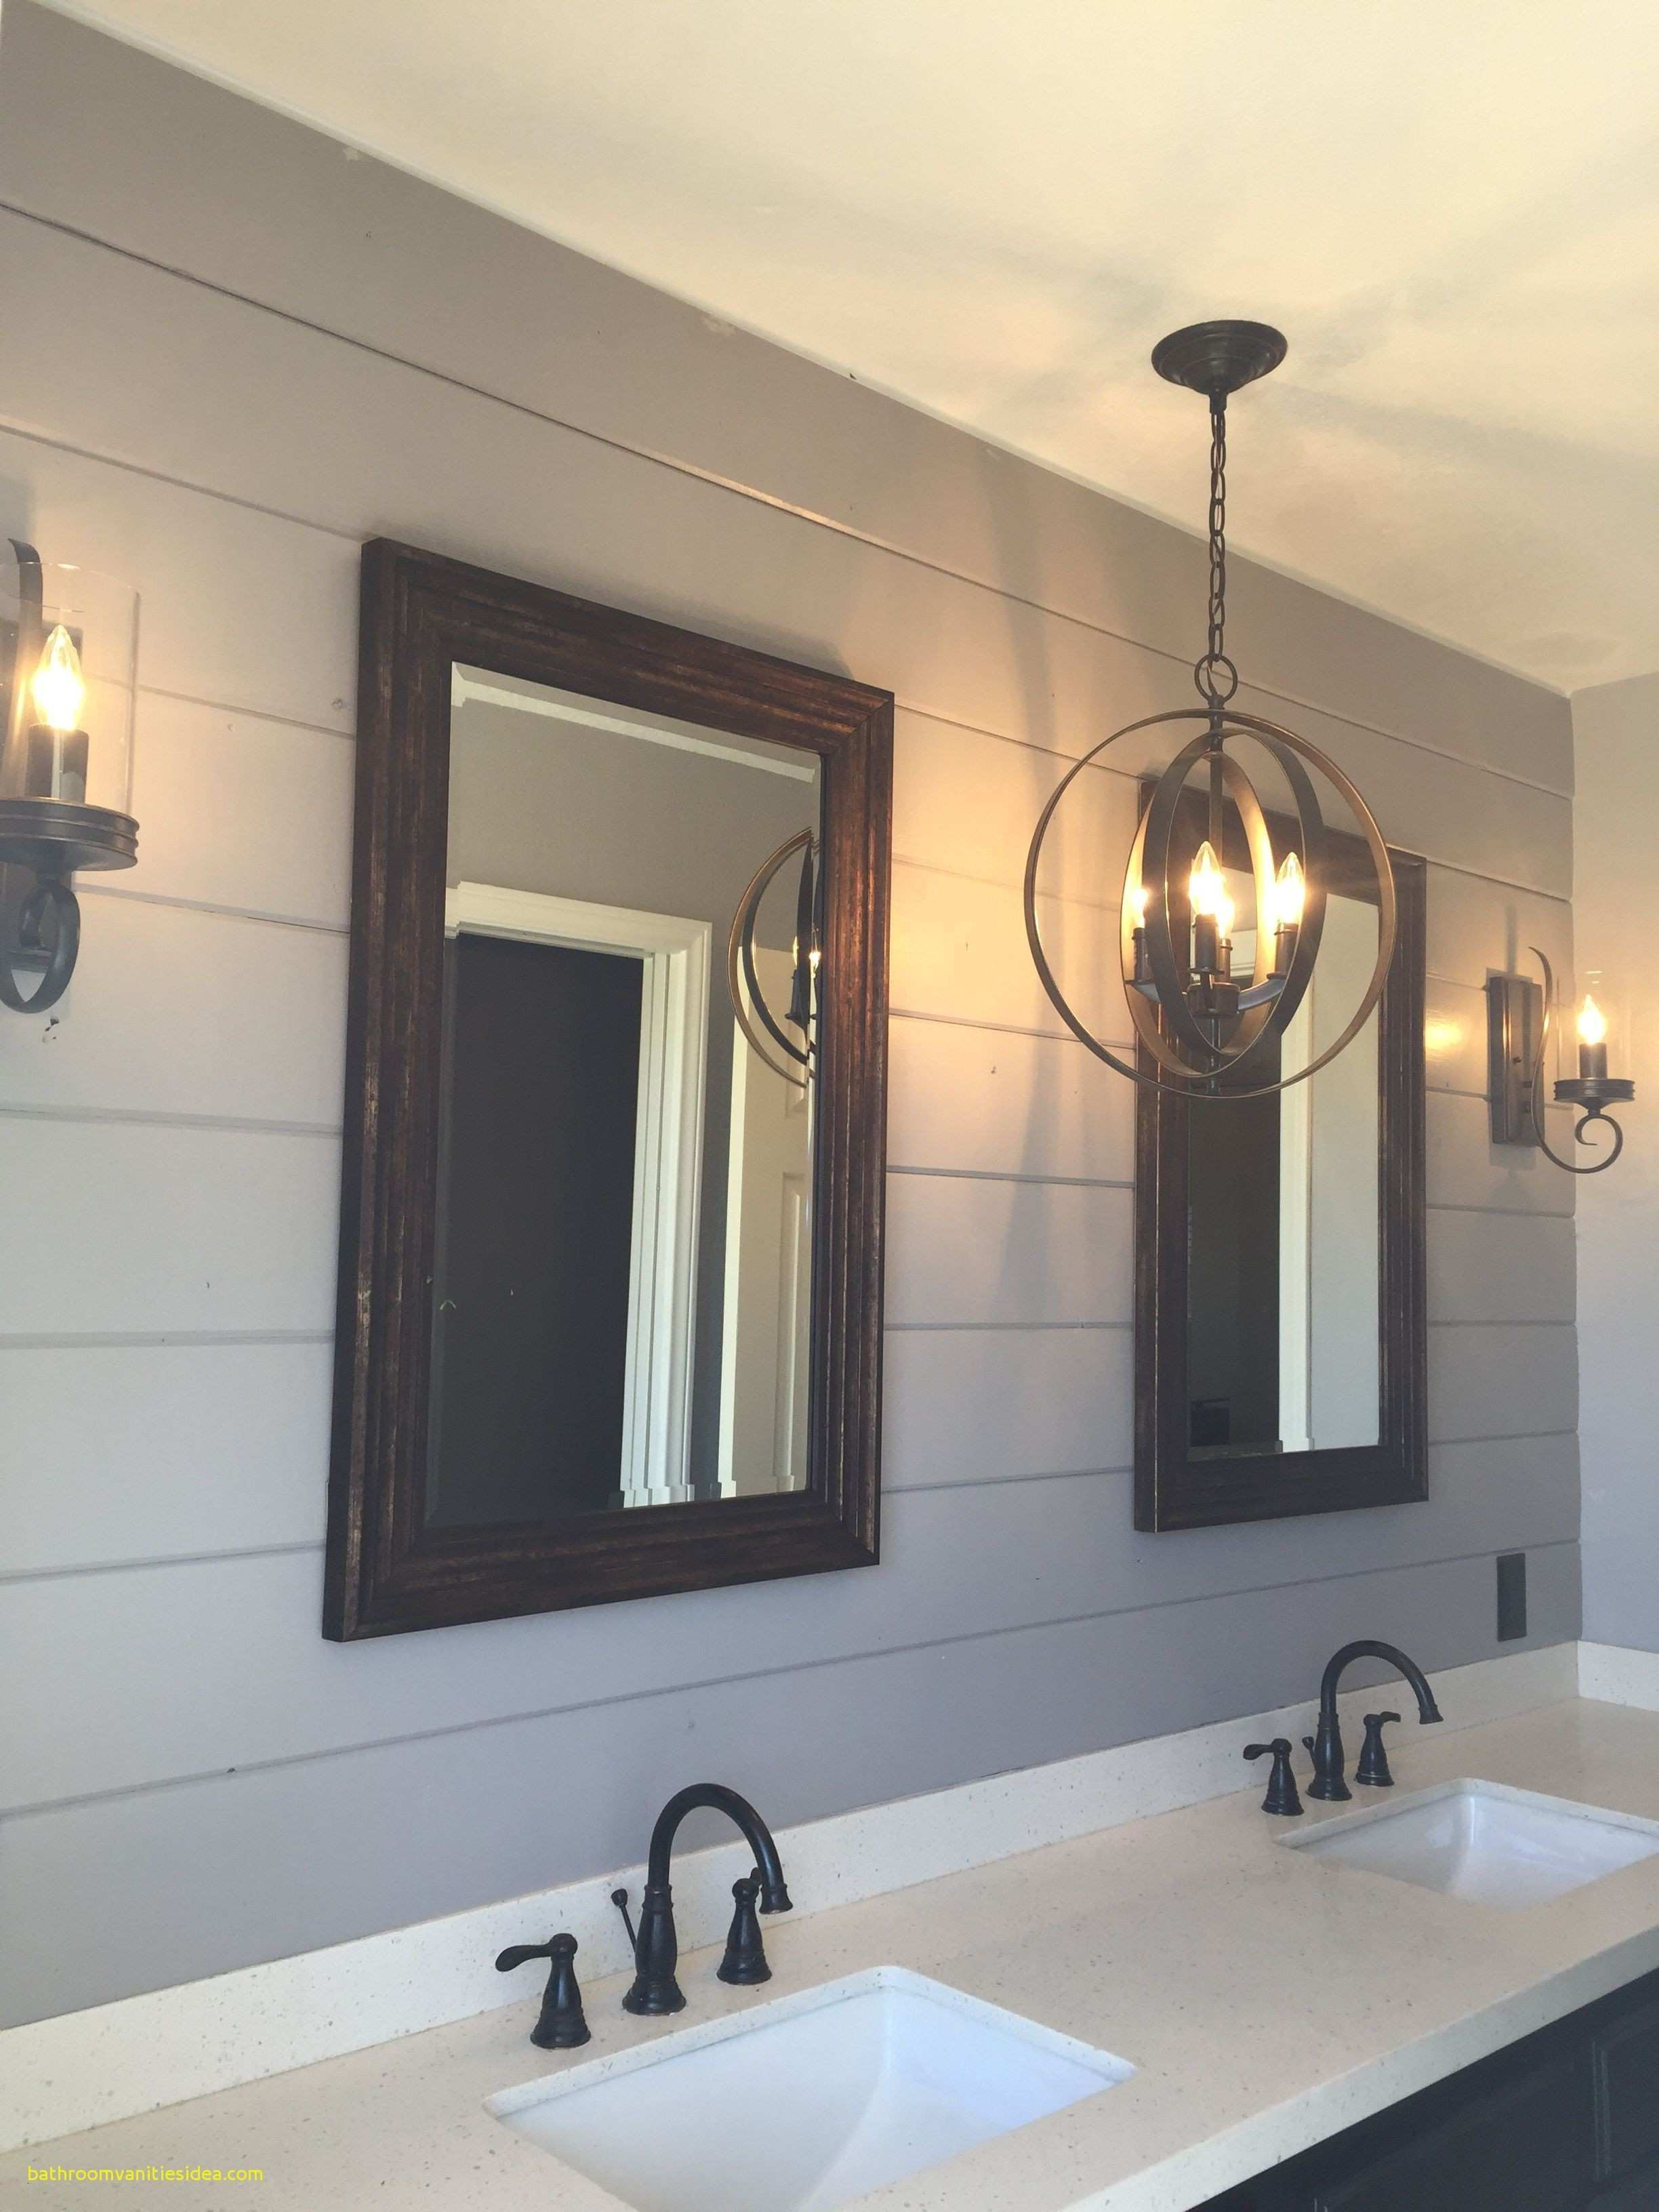 Great Mirrors with Lights for Bathroom terranovaenergyltd